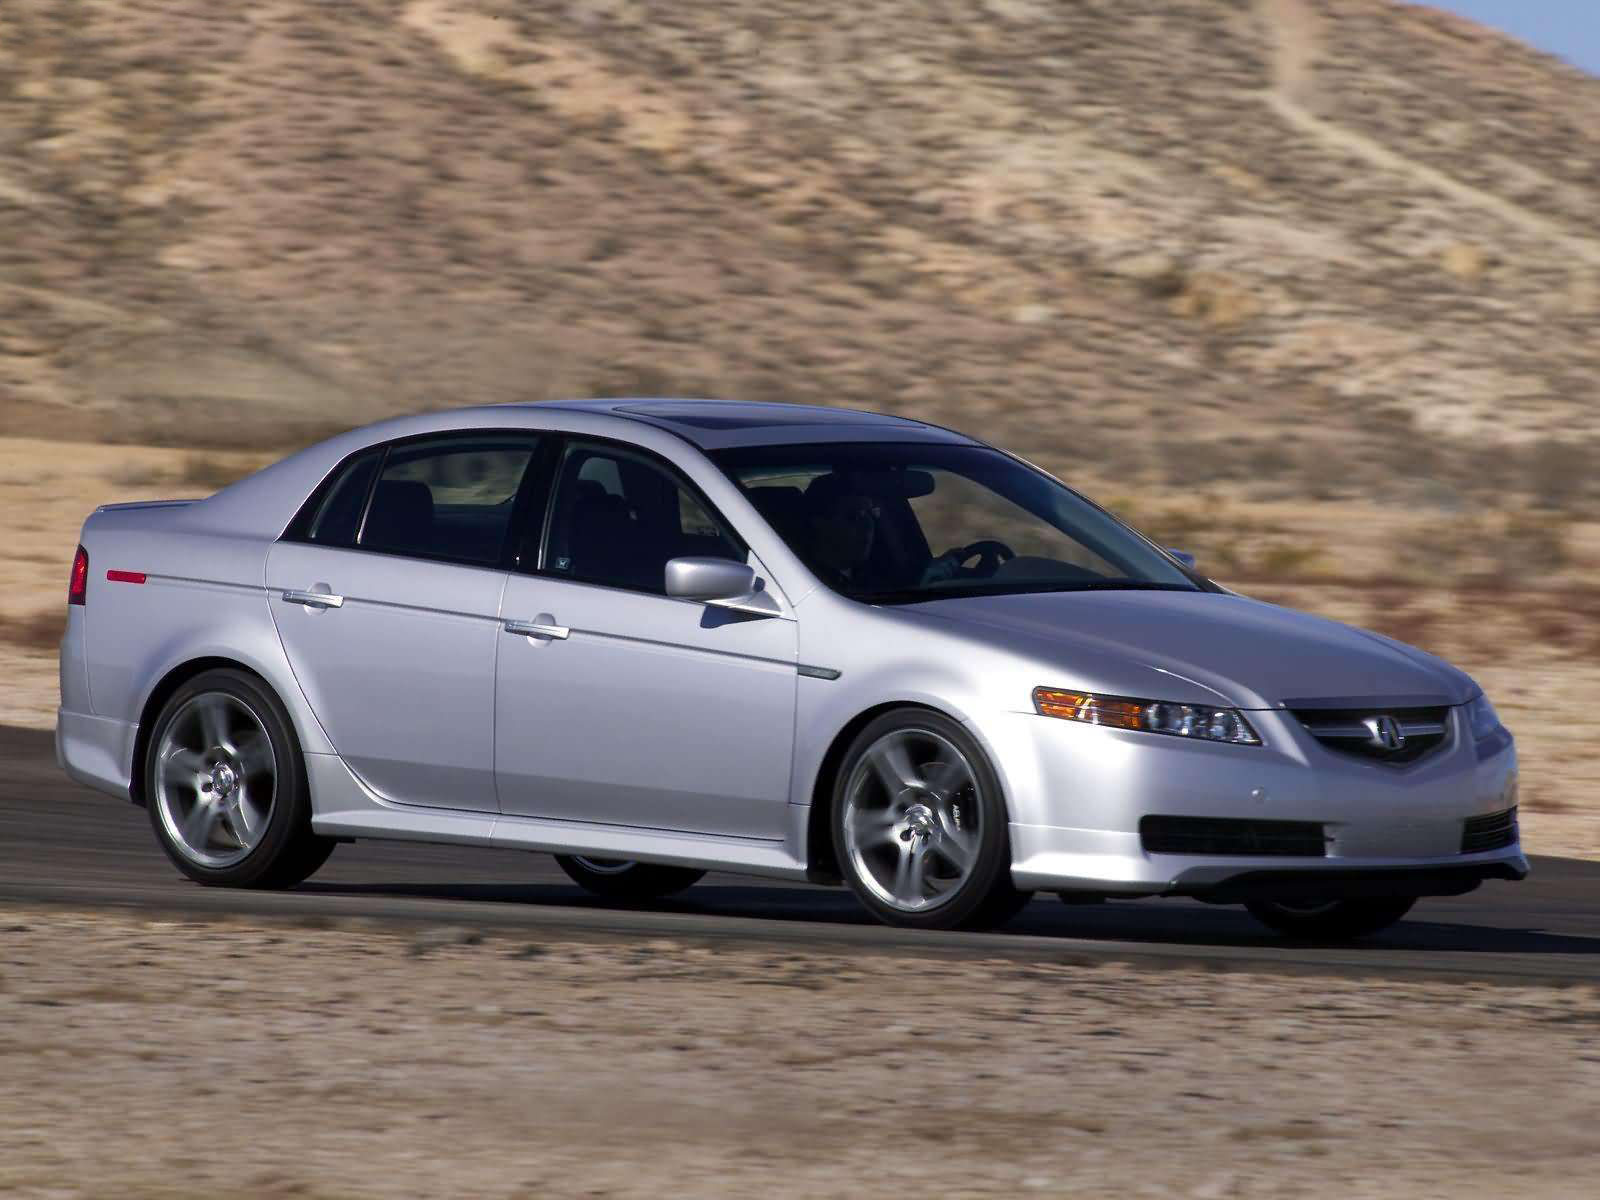 2004 Acura TL with ASPEC Performance Package photo - 12